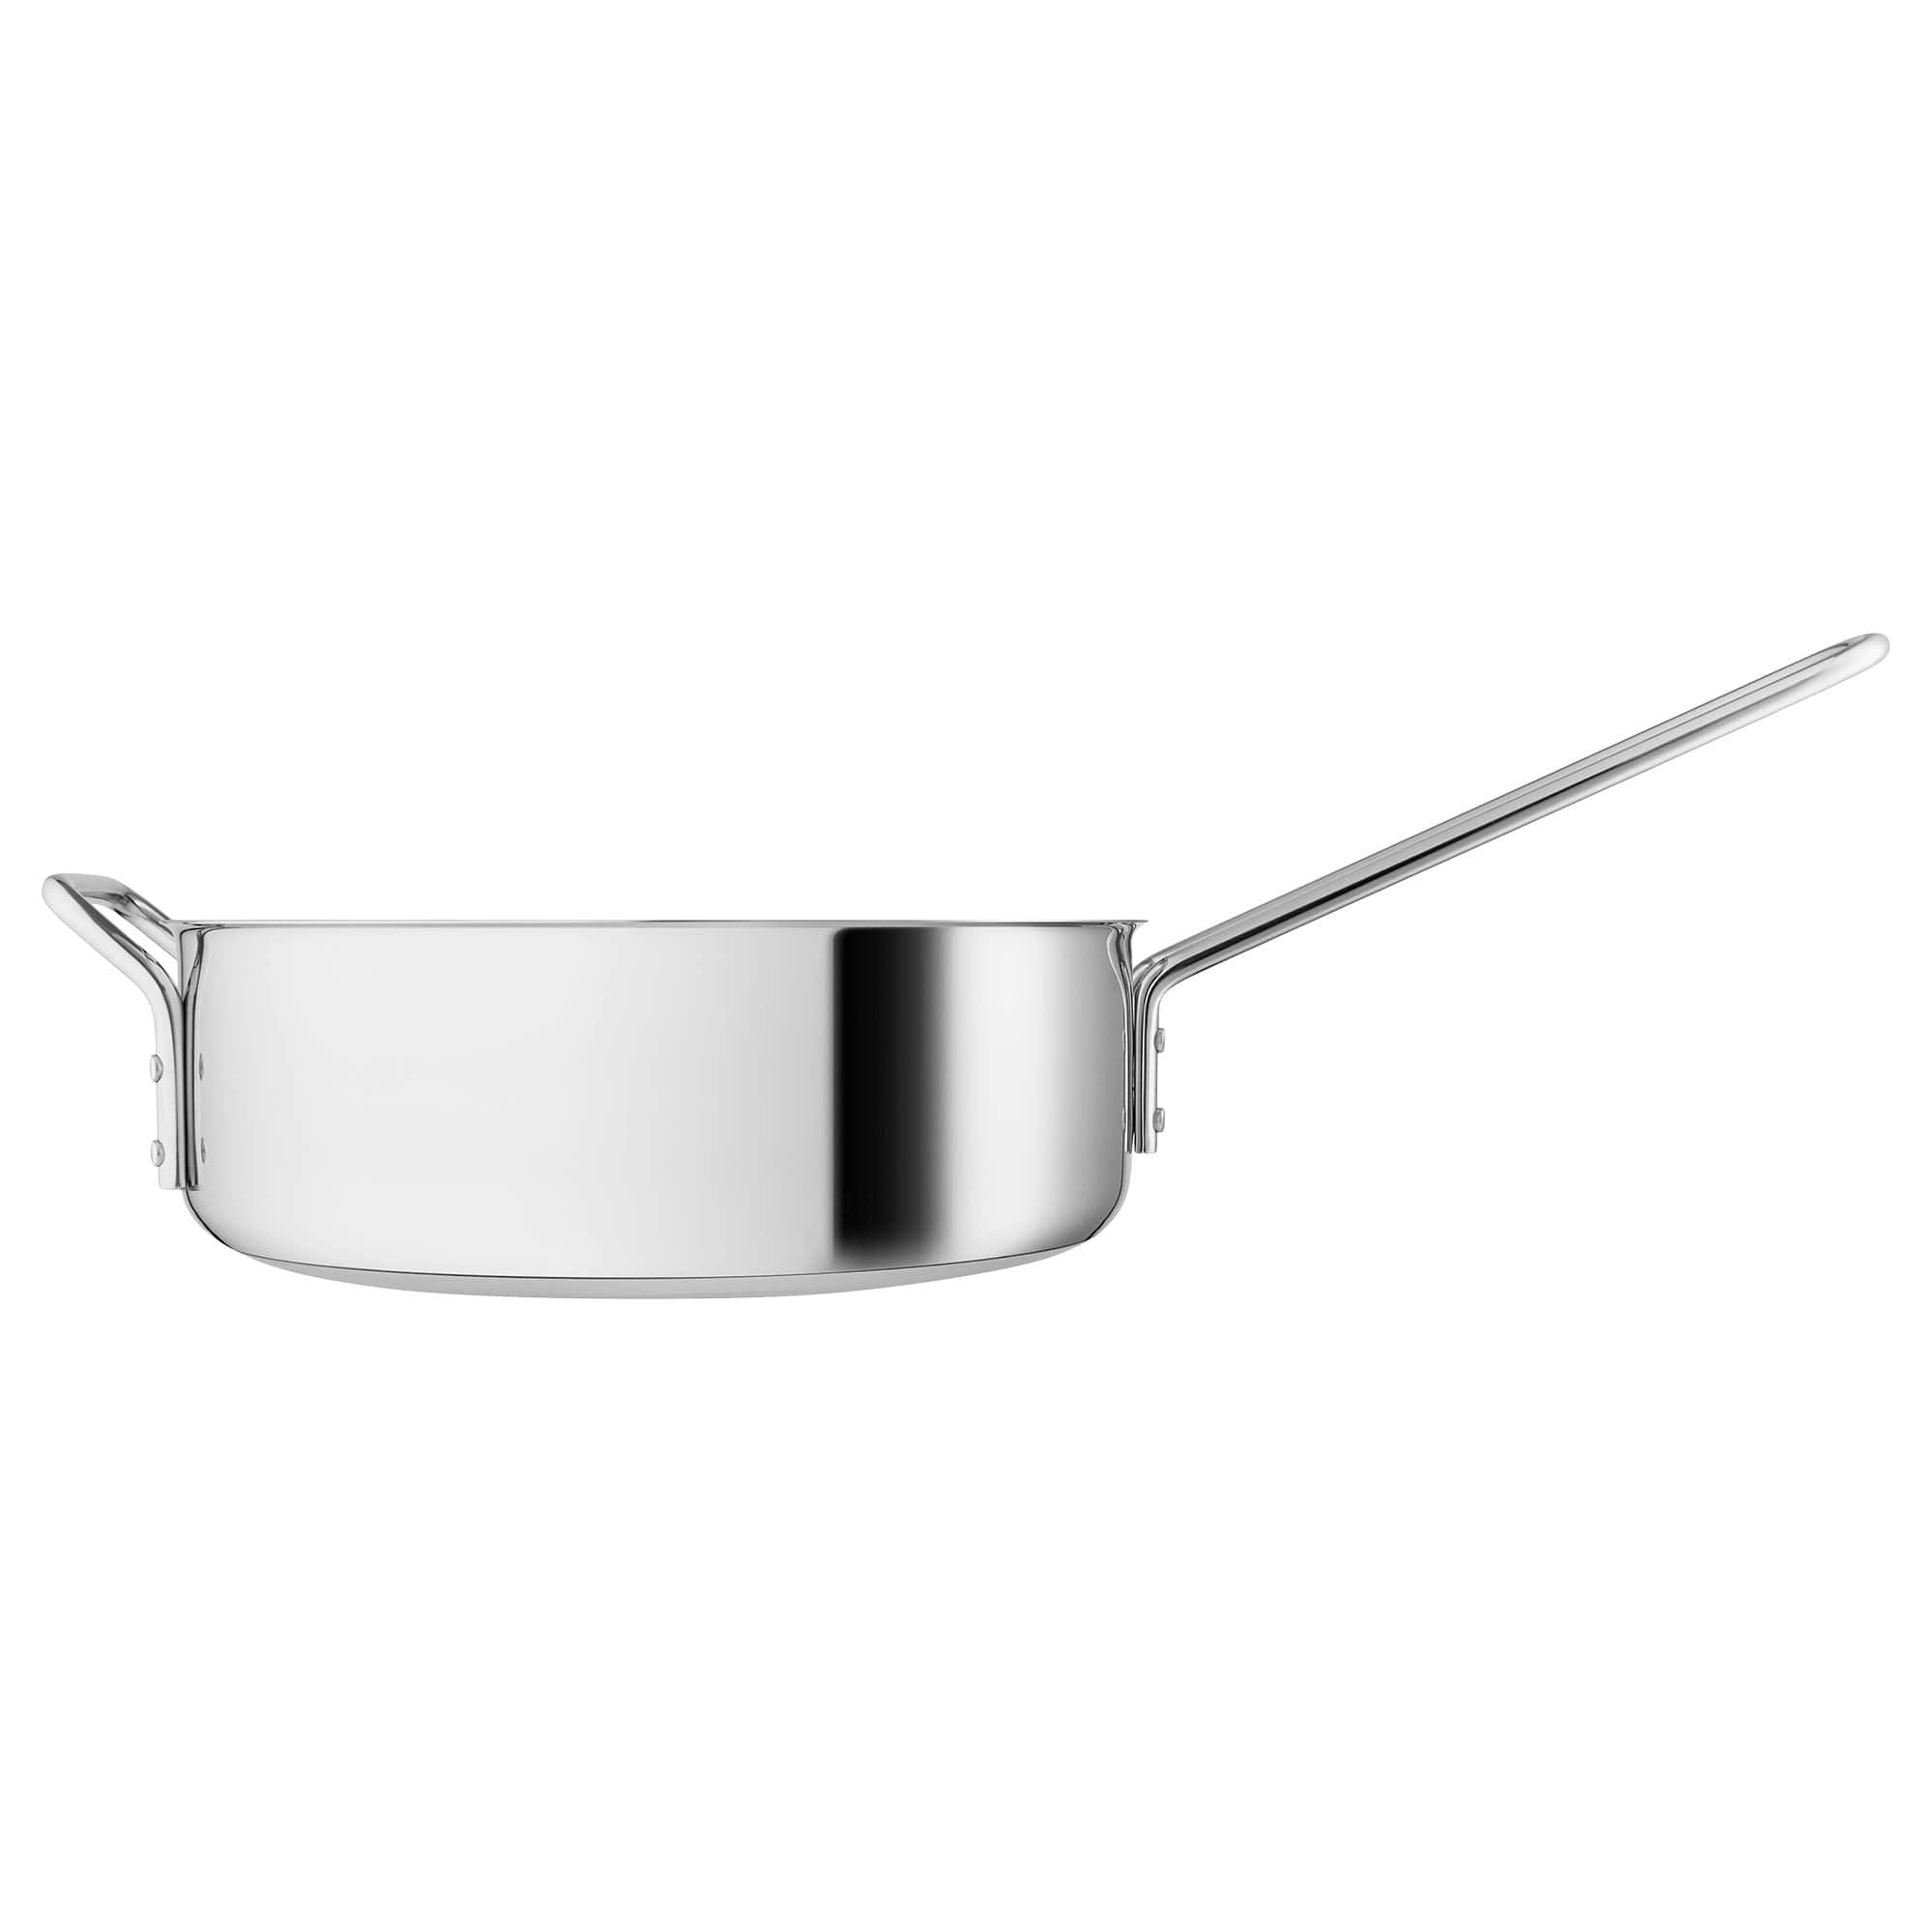 Stainless Steel Saute Pan with Ceramic Coating, 24cm